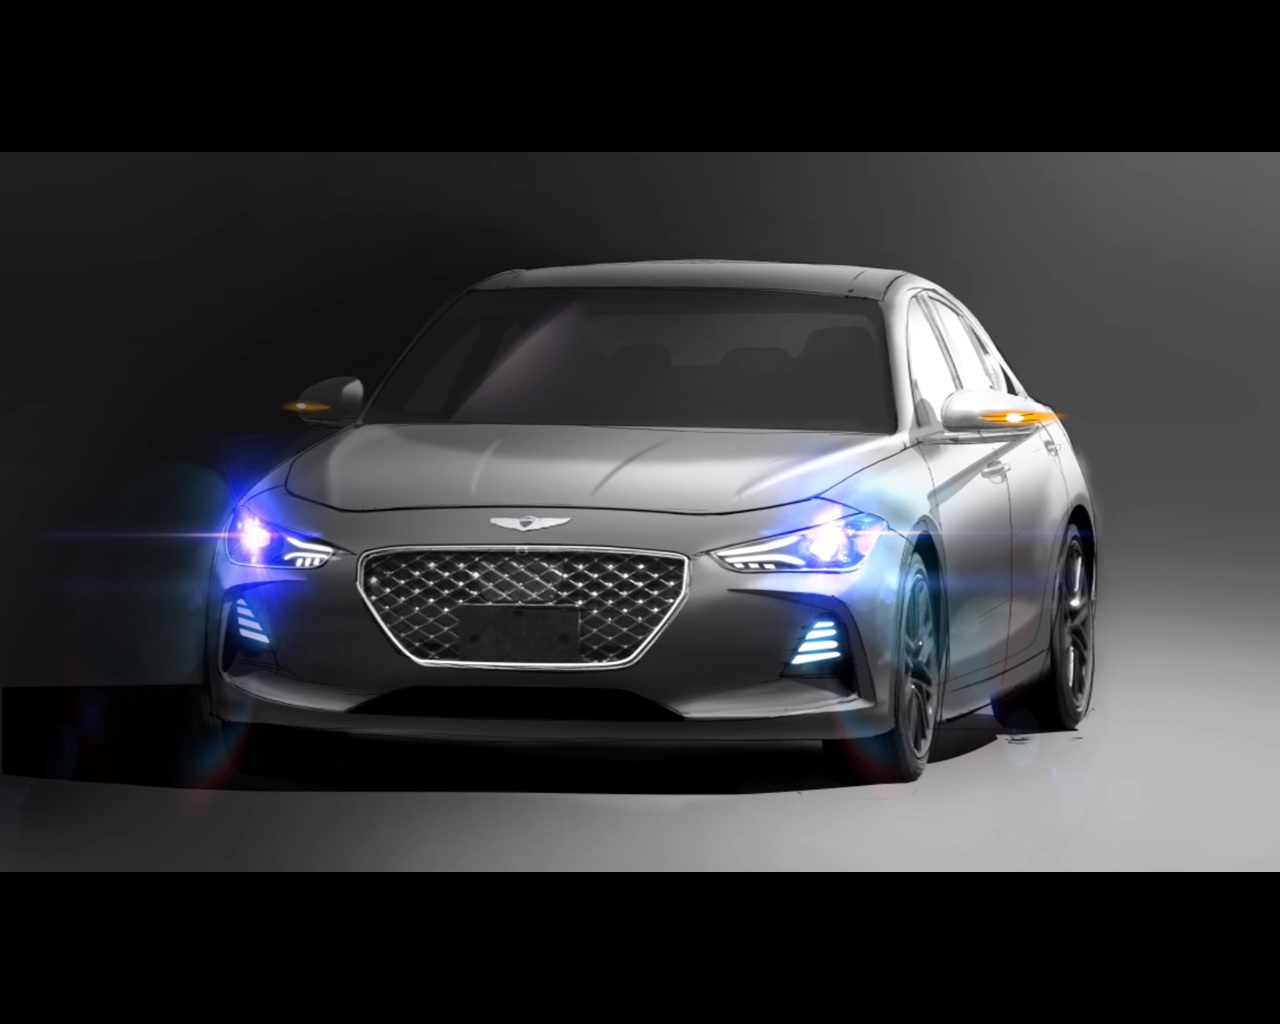 Watch 2018 Genesis G70 Sport Sedan Teaser Confirms